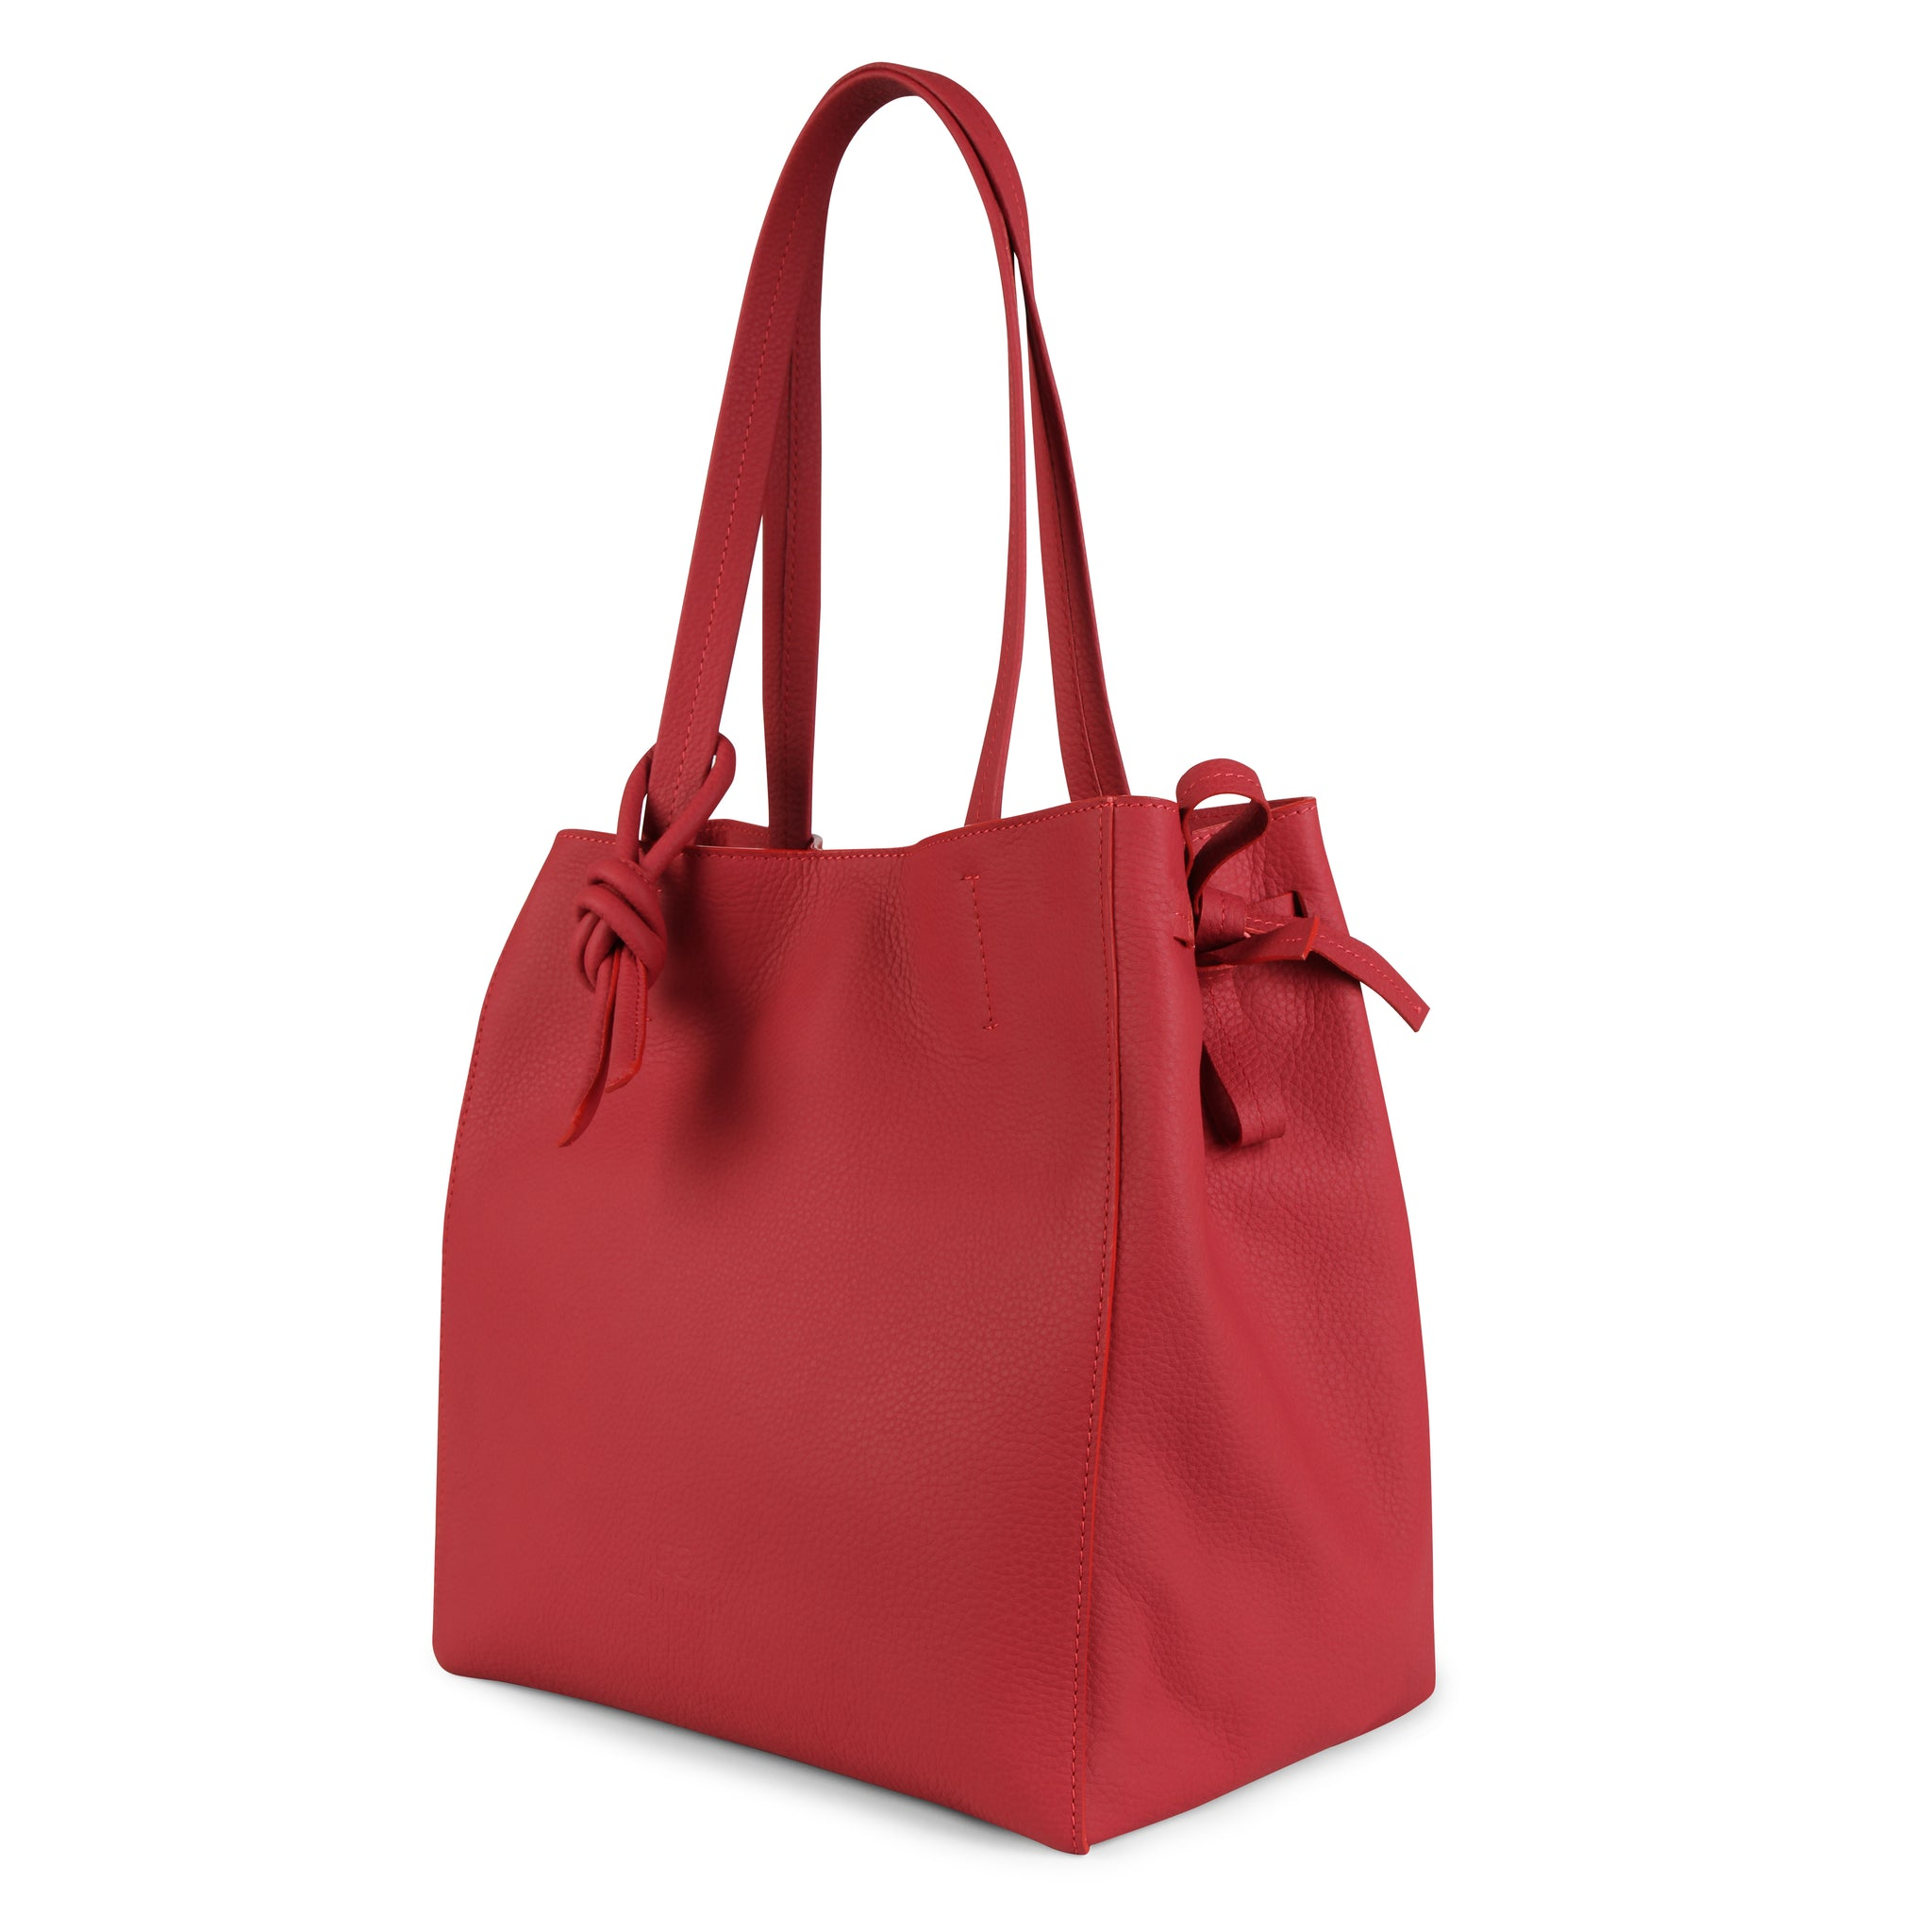 An expandable leather tote bag for women in red that could be used as a travel bag, side image.